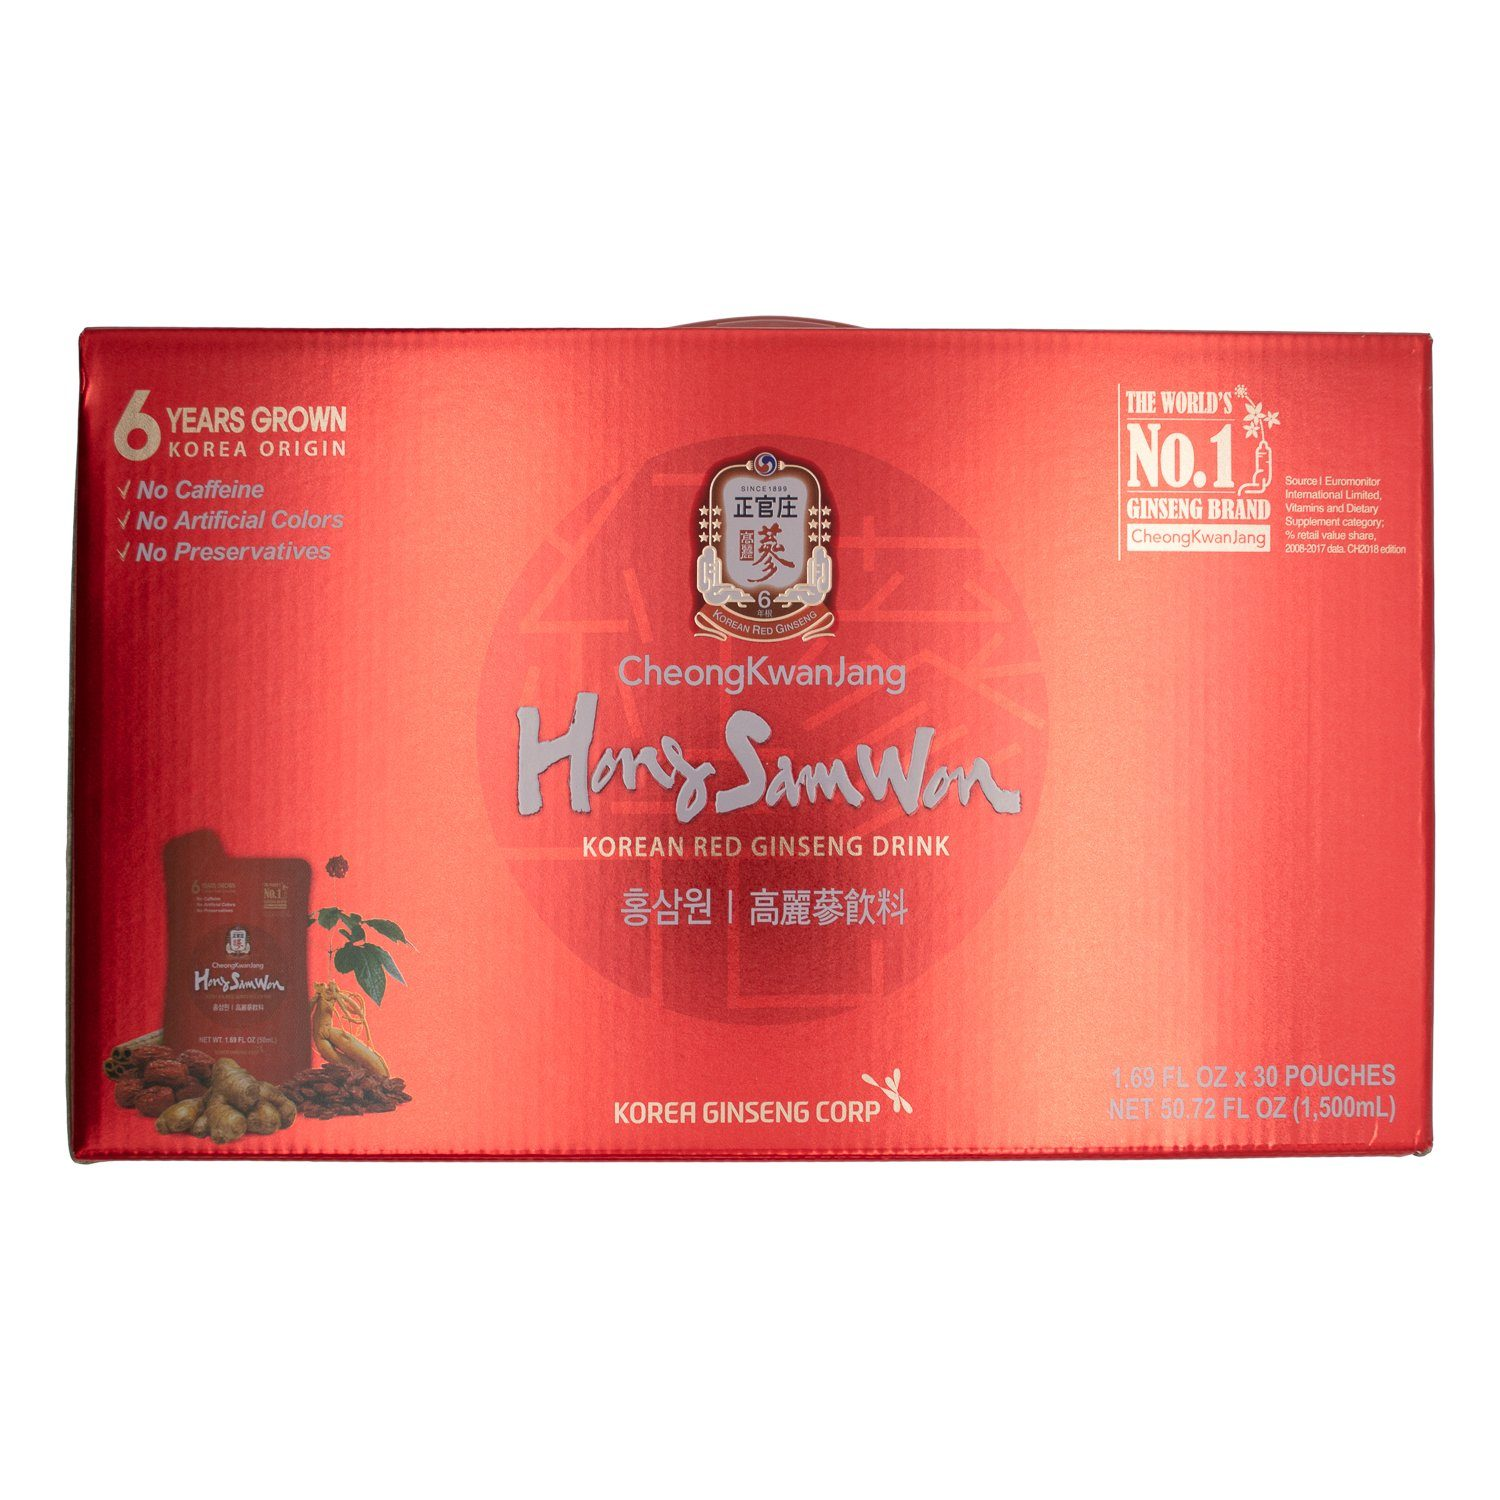 Hong Sam Won Red Ginseng Drink Hong Sam Won 1.69 Fl Oz-30 Count